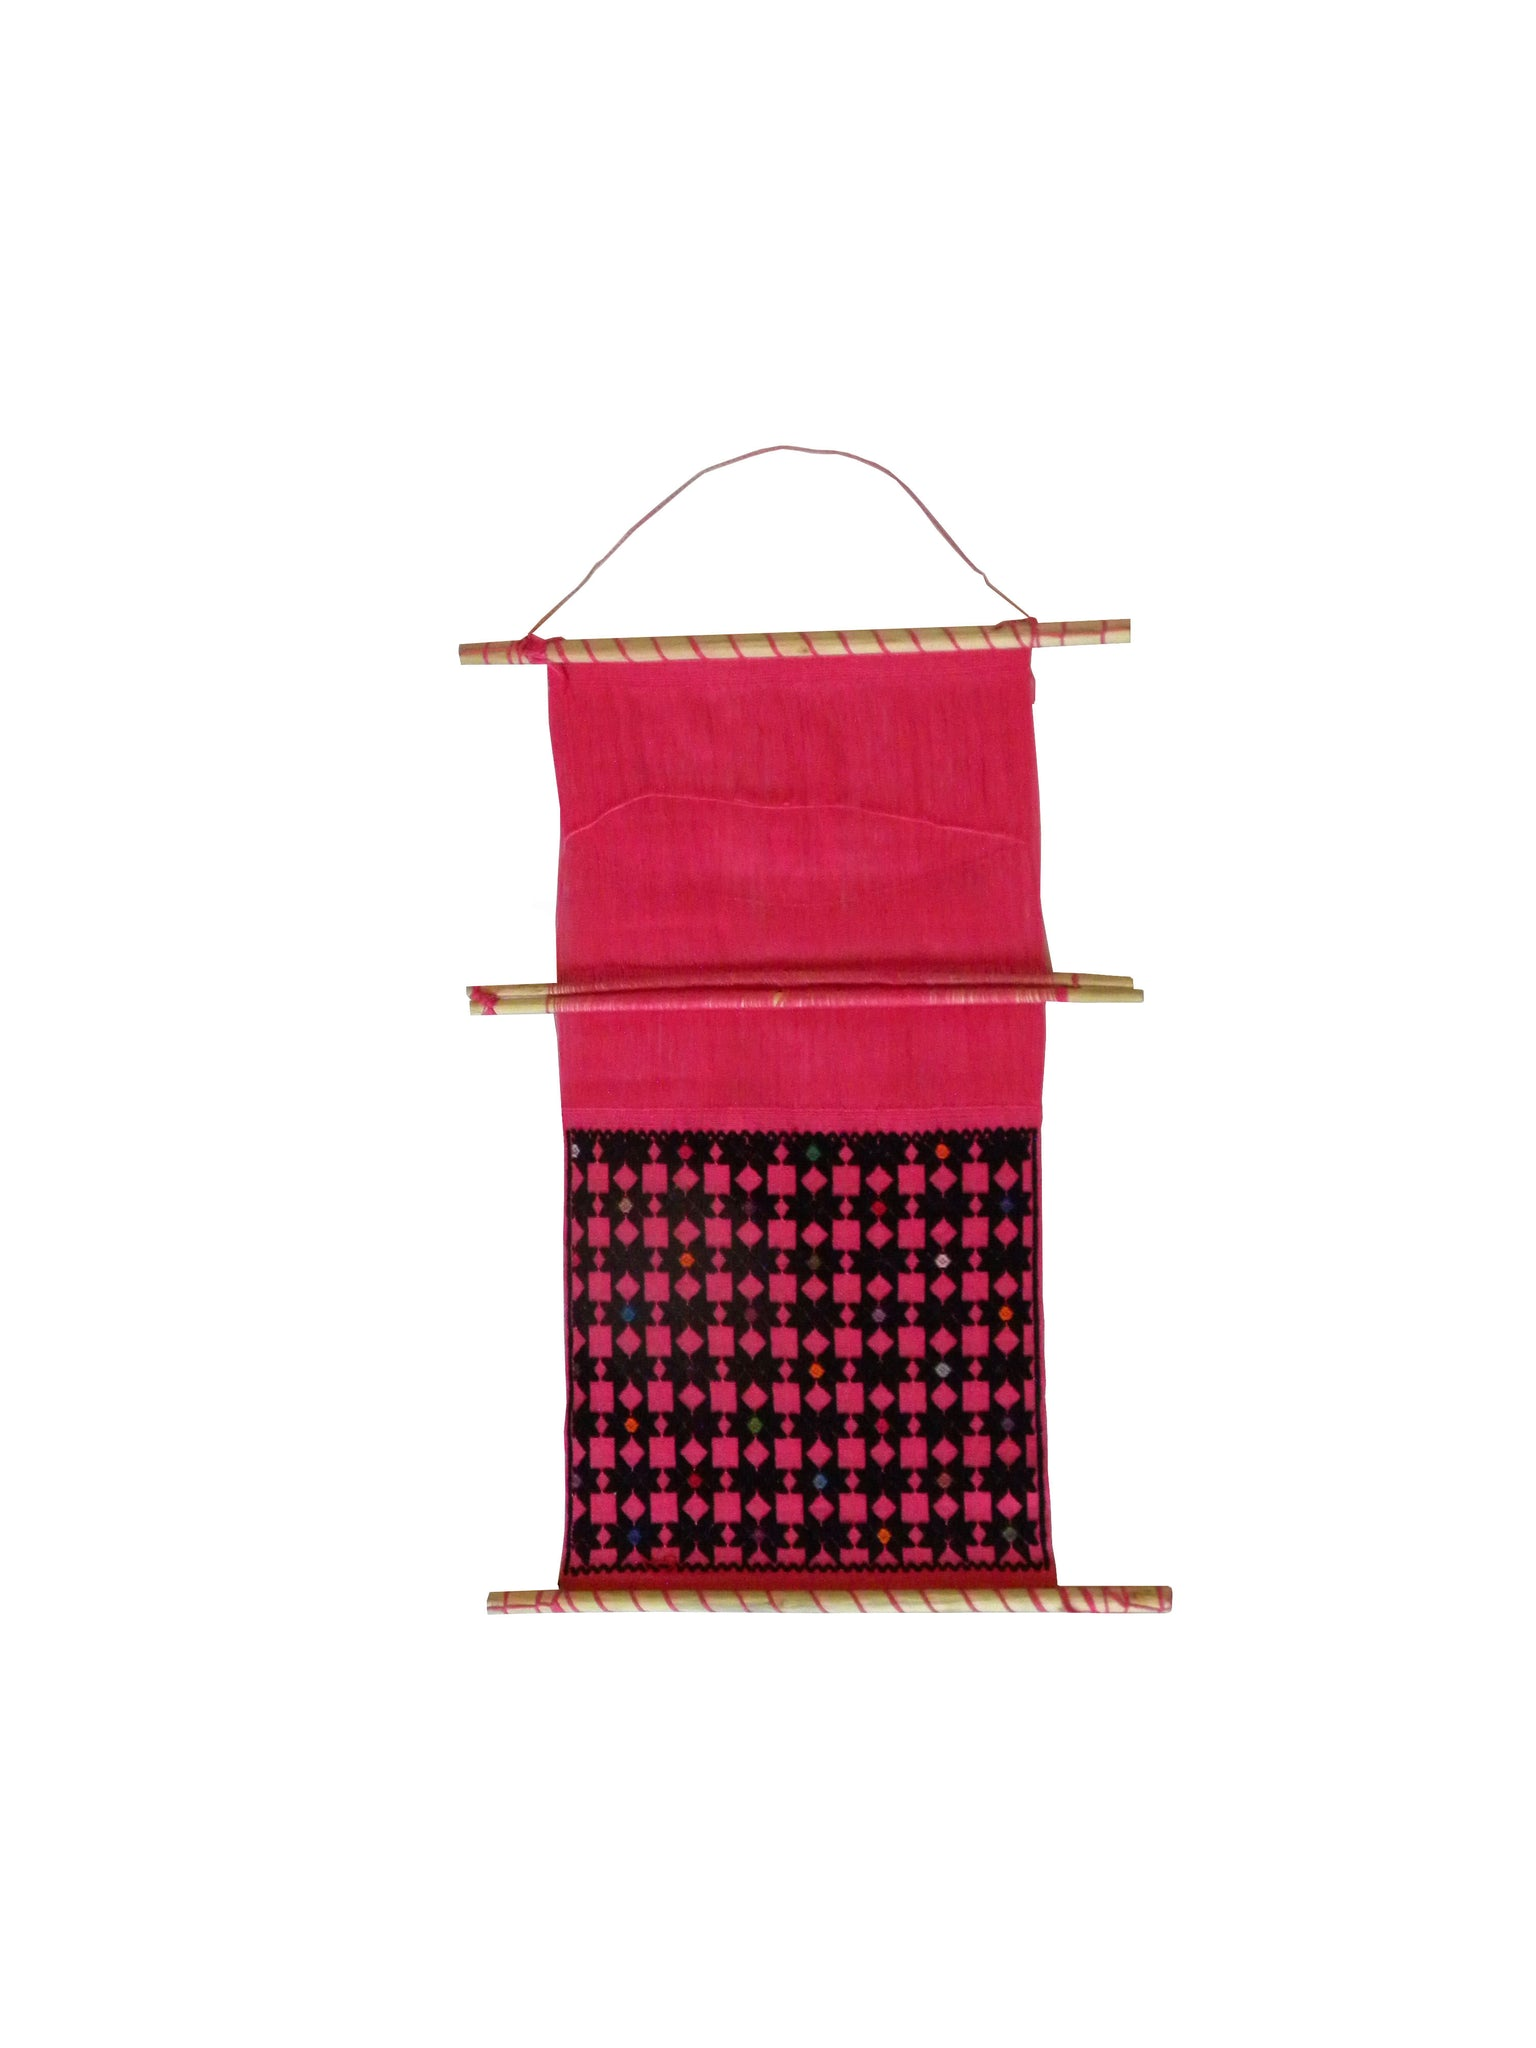 Telar Decorativo  |  Decorative Loom